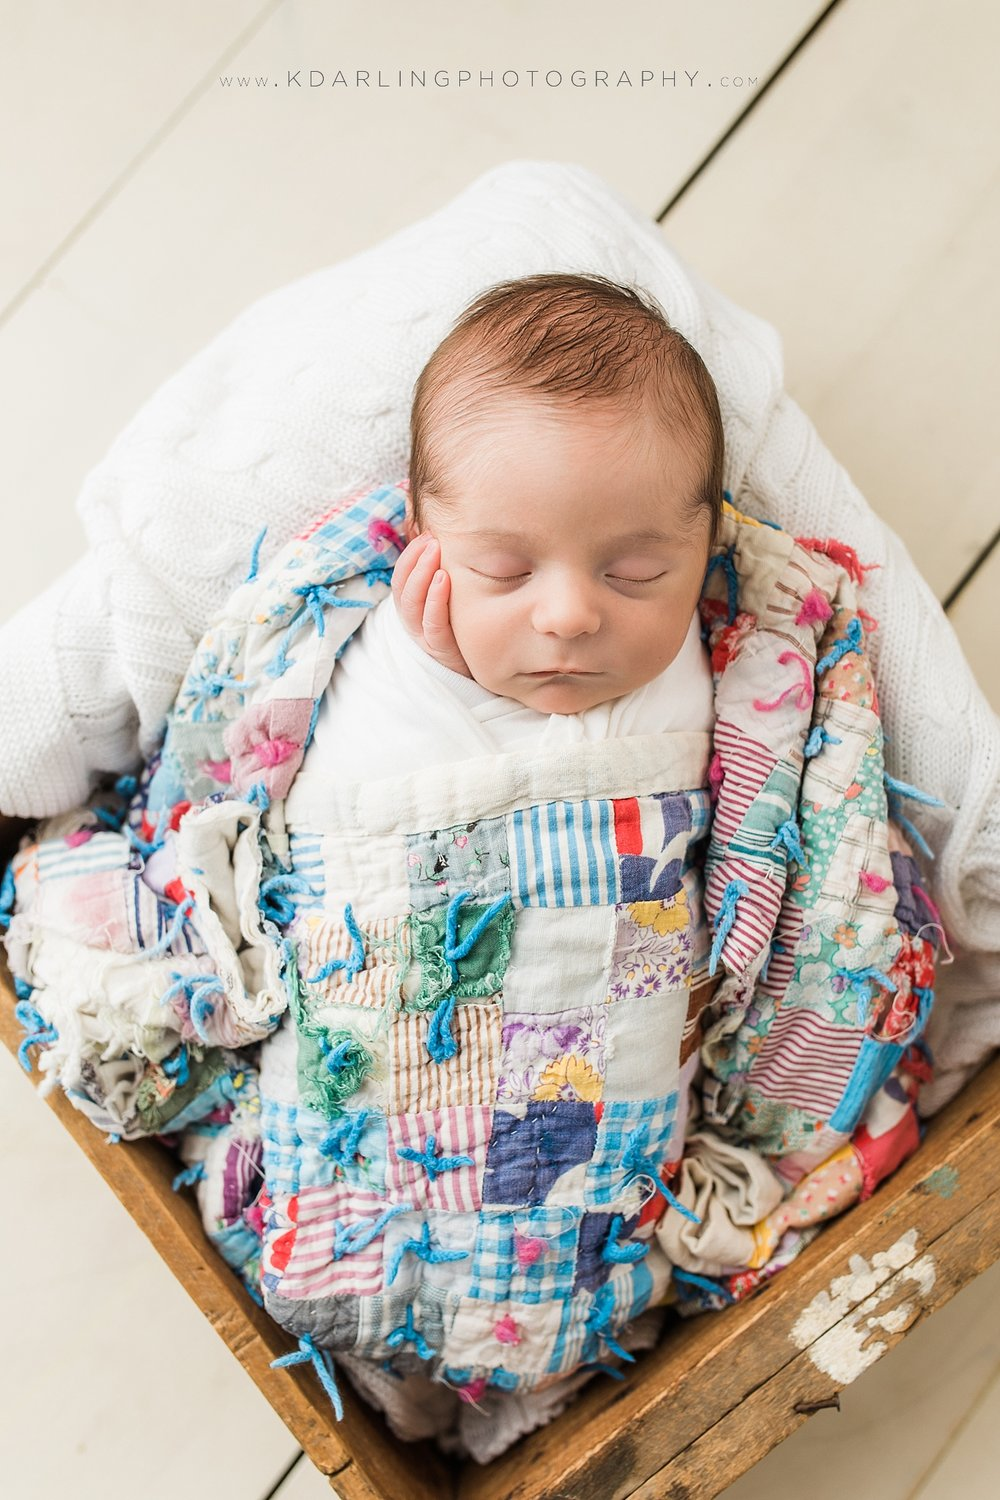 Newborn baby wrapped in a quilt